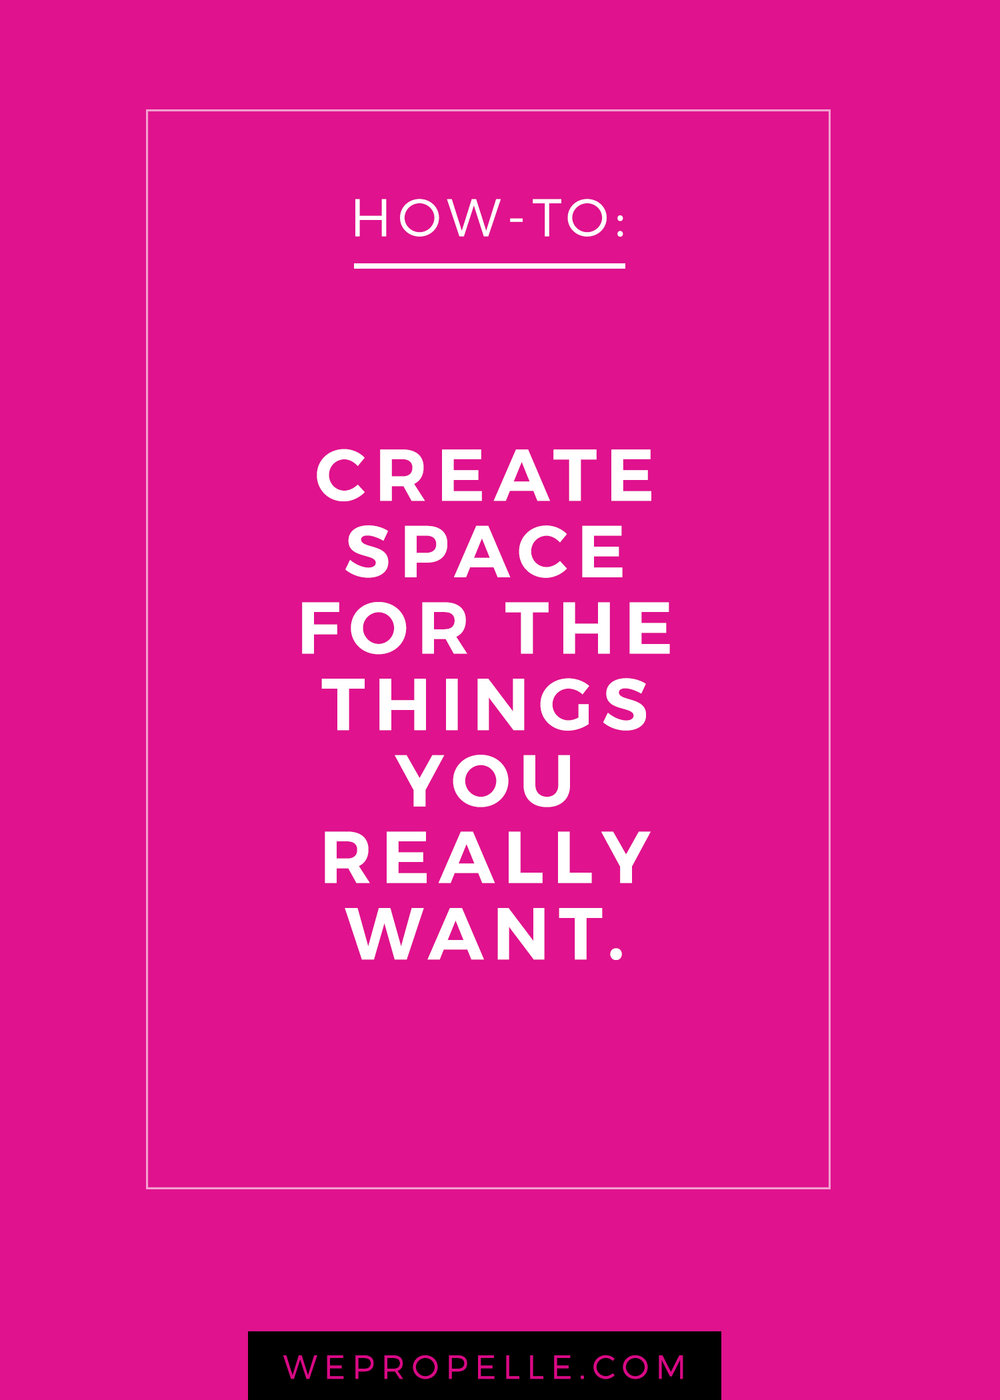 How to create space in your business and life for the things you really want. | wepropelle.com